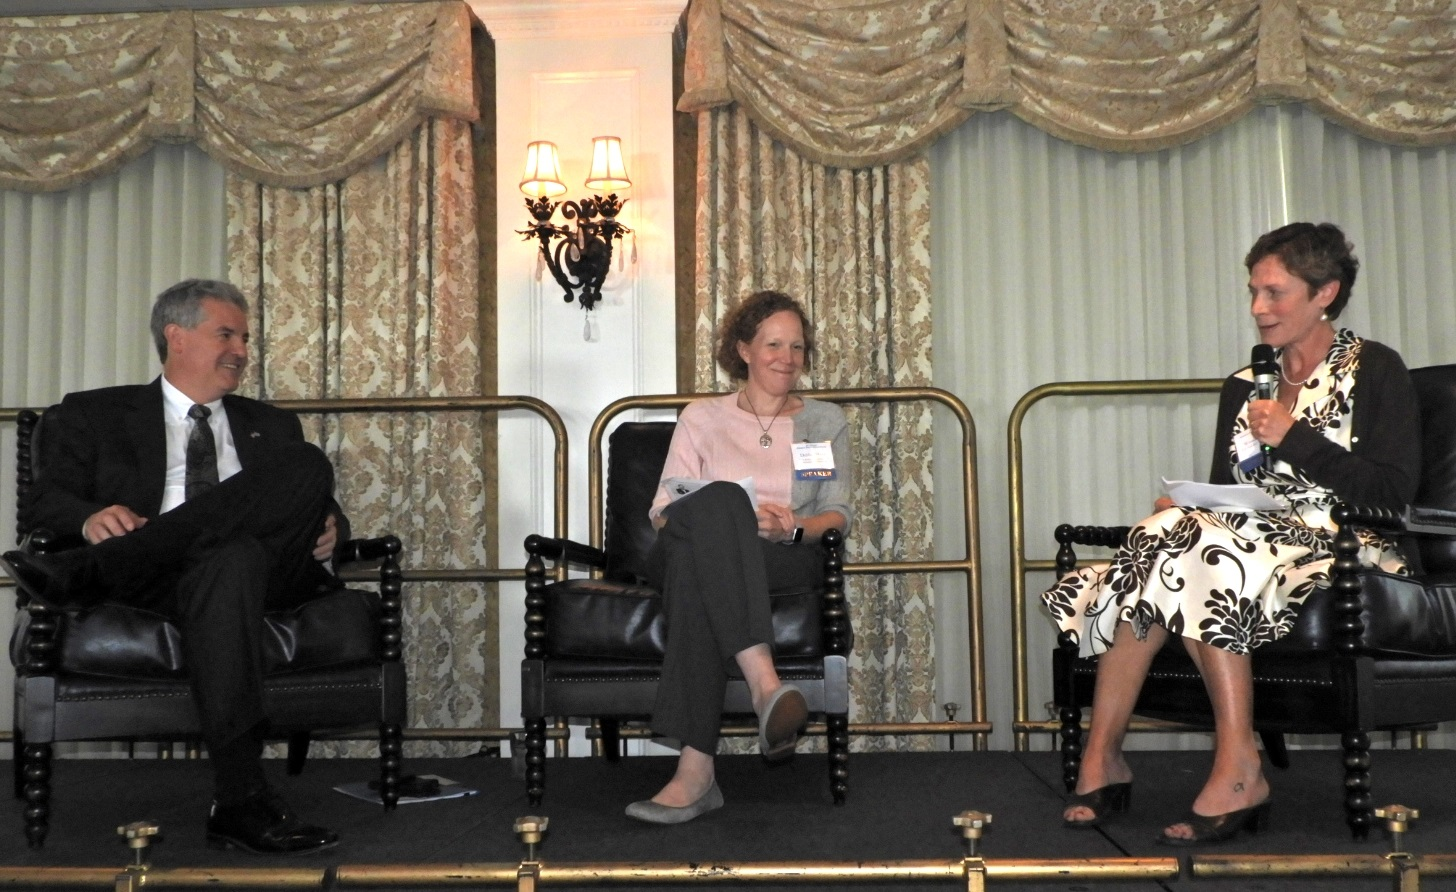 Opening plenary speakers: Secretary Shawn Garvin, Delaware Department of Natural Resources and Environmental Control; Deputy Commissioner Debbie Mans, NJ Department of Environmental Protection; Wendi Weber, Northeast Regional Director, U.S. Fish and Wildlife Service